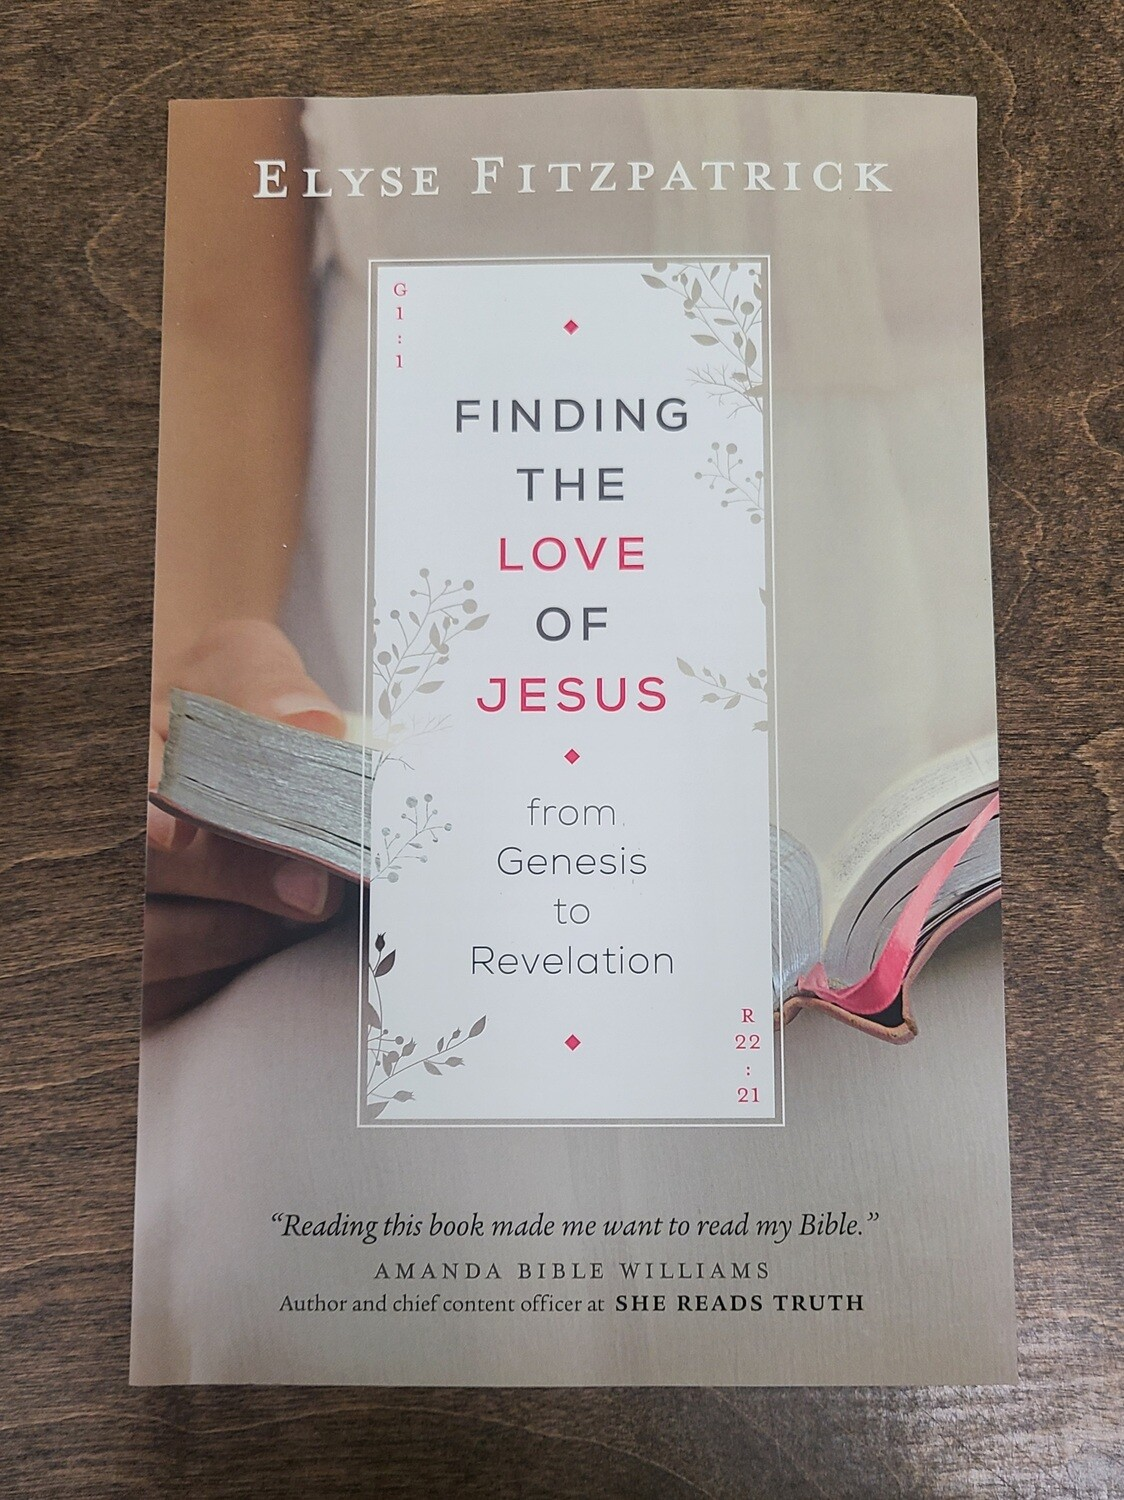 Finding the Love of Jesus from Genesis to Revelation by Elyse Fitzpatrick